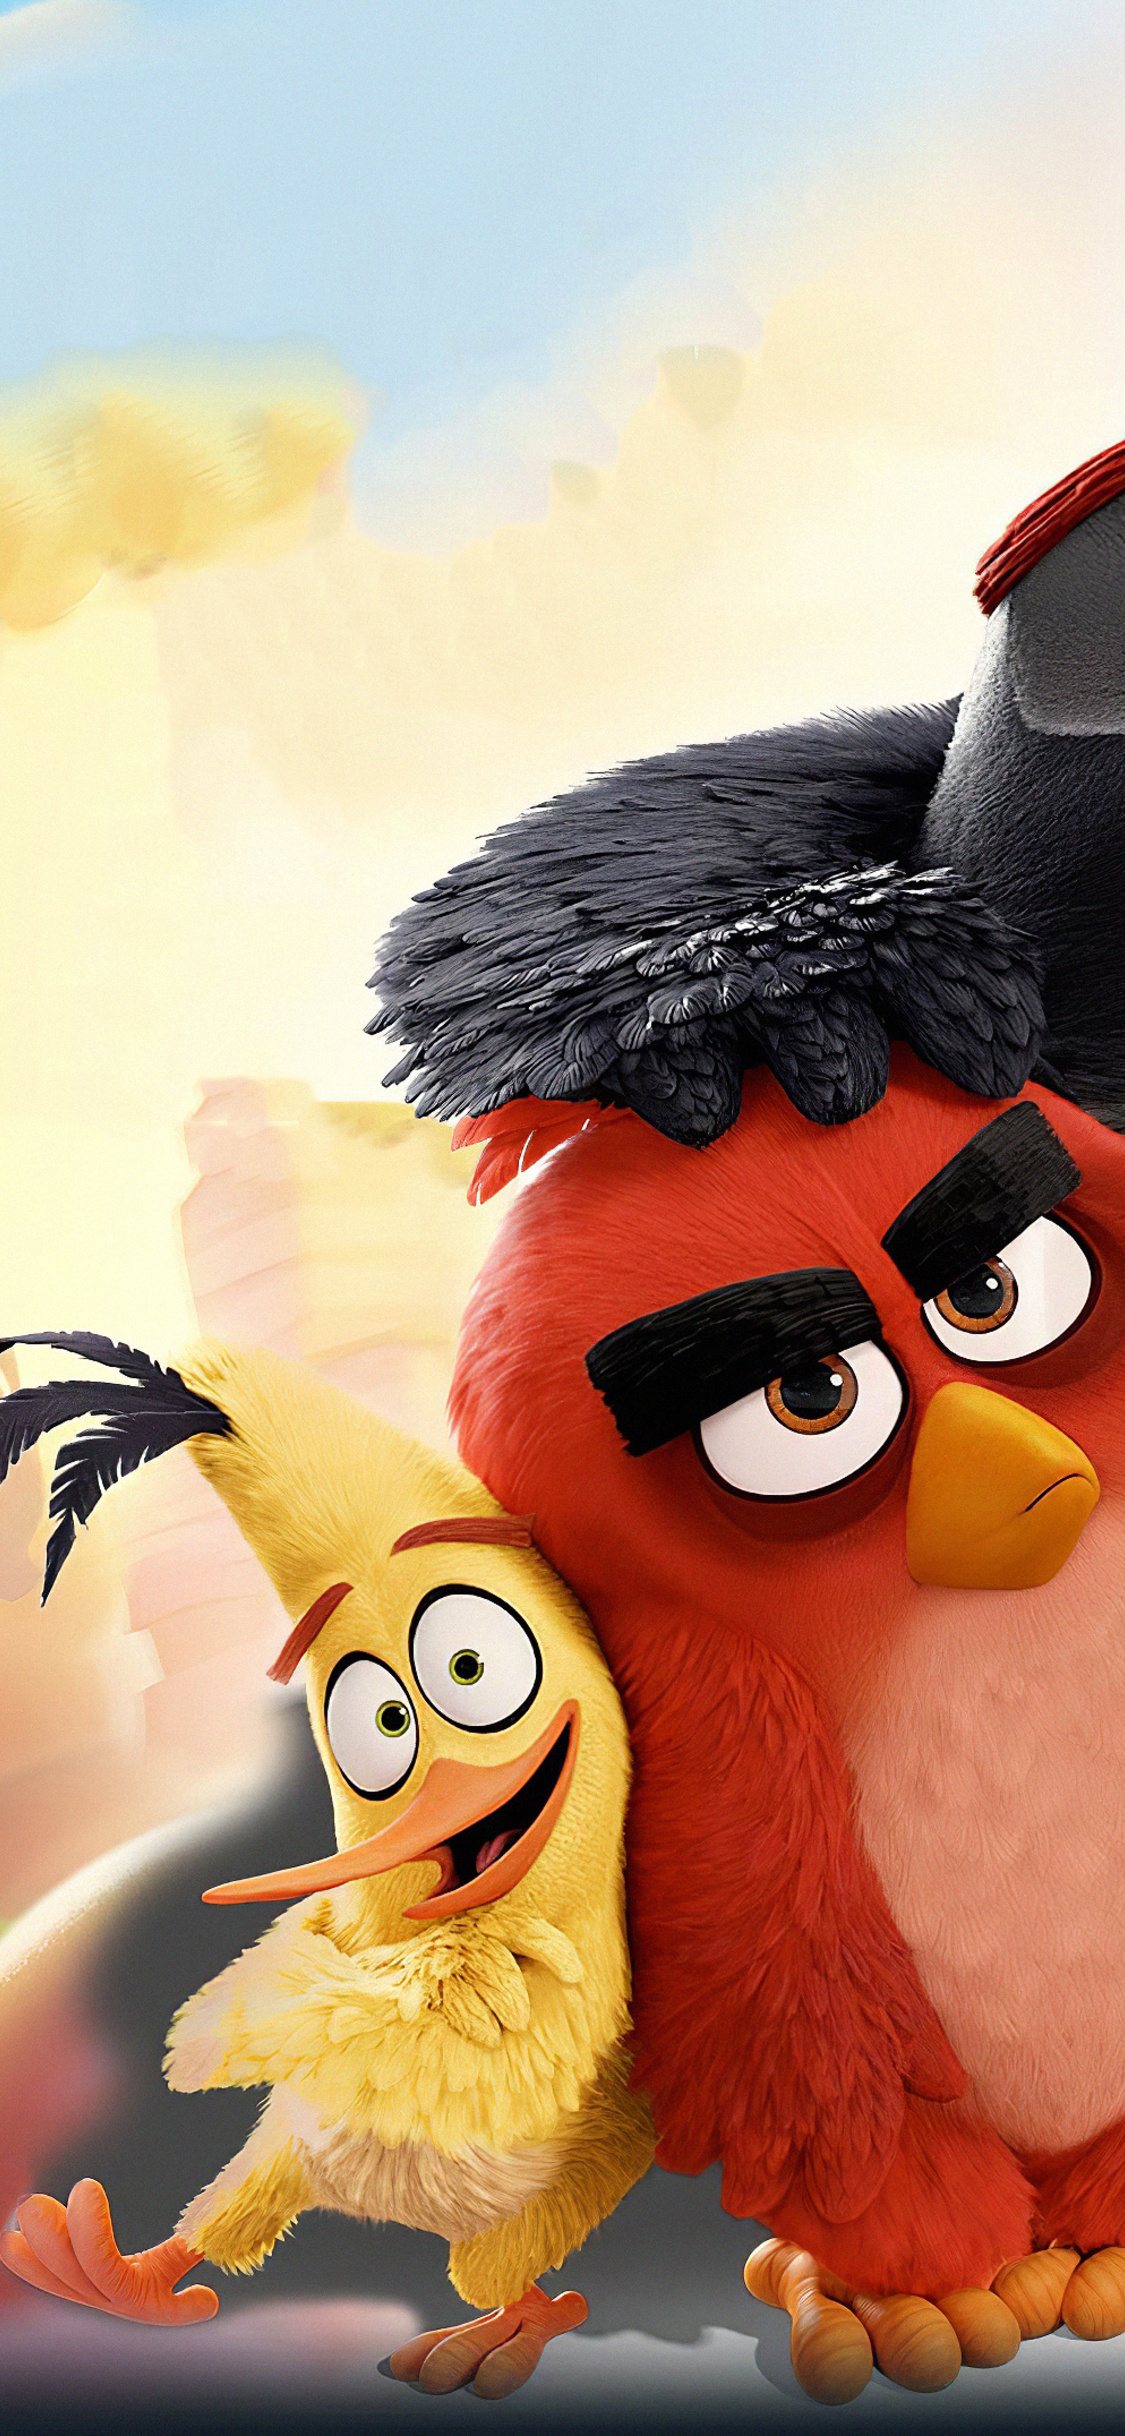 1125x2436 Angry Birds 10 Years Iphone Xs Iphone 10 Iphone X Hd 4k Wallpapers Images Backgrounds Photos And Pictures